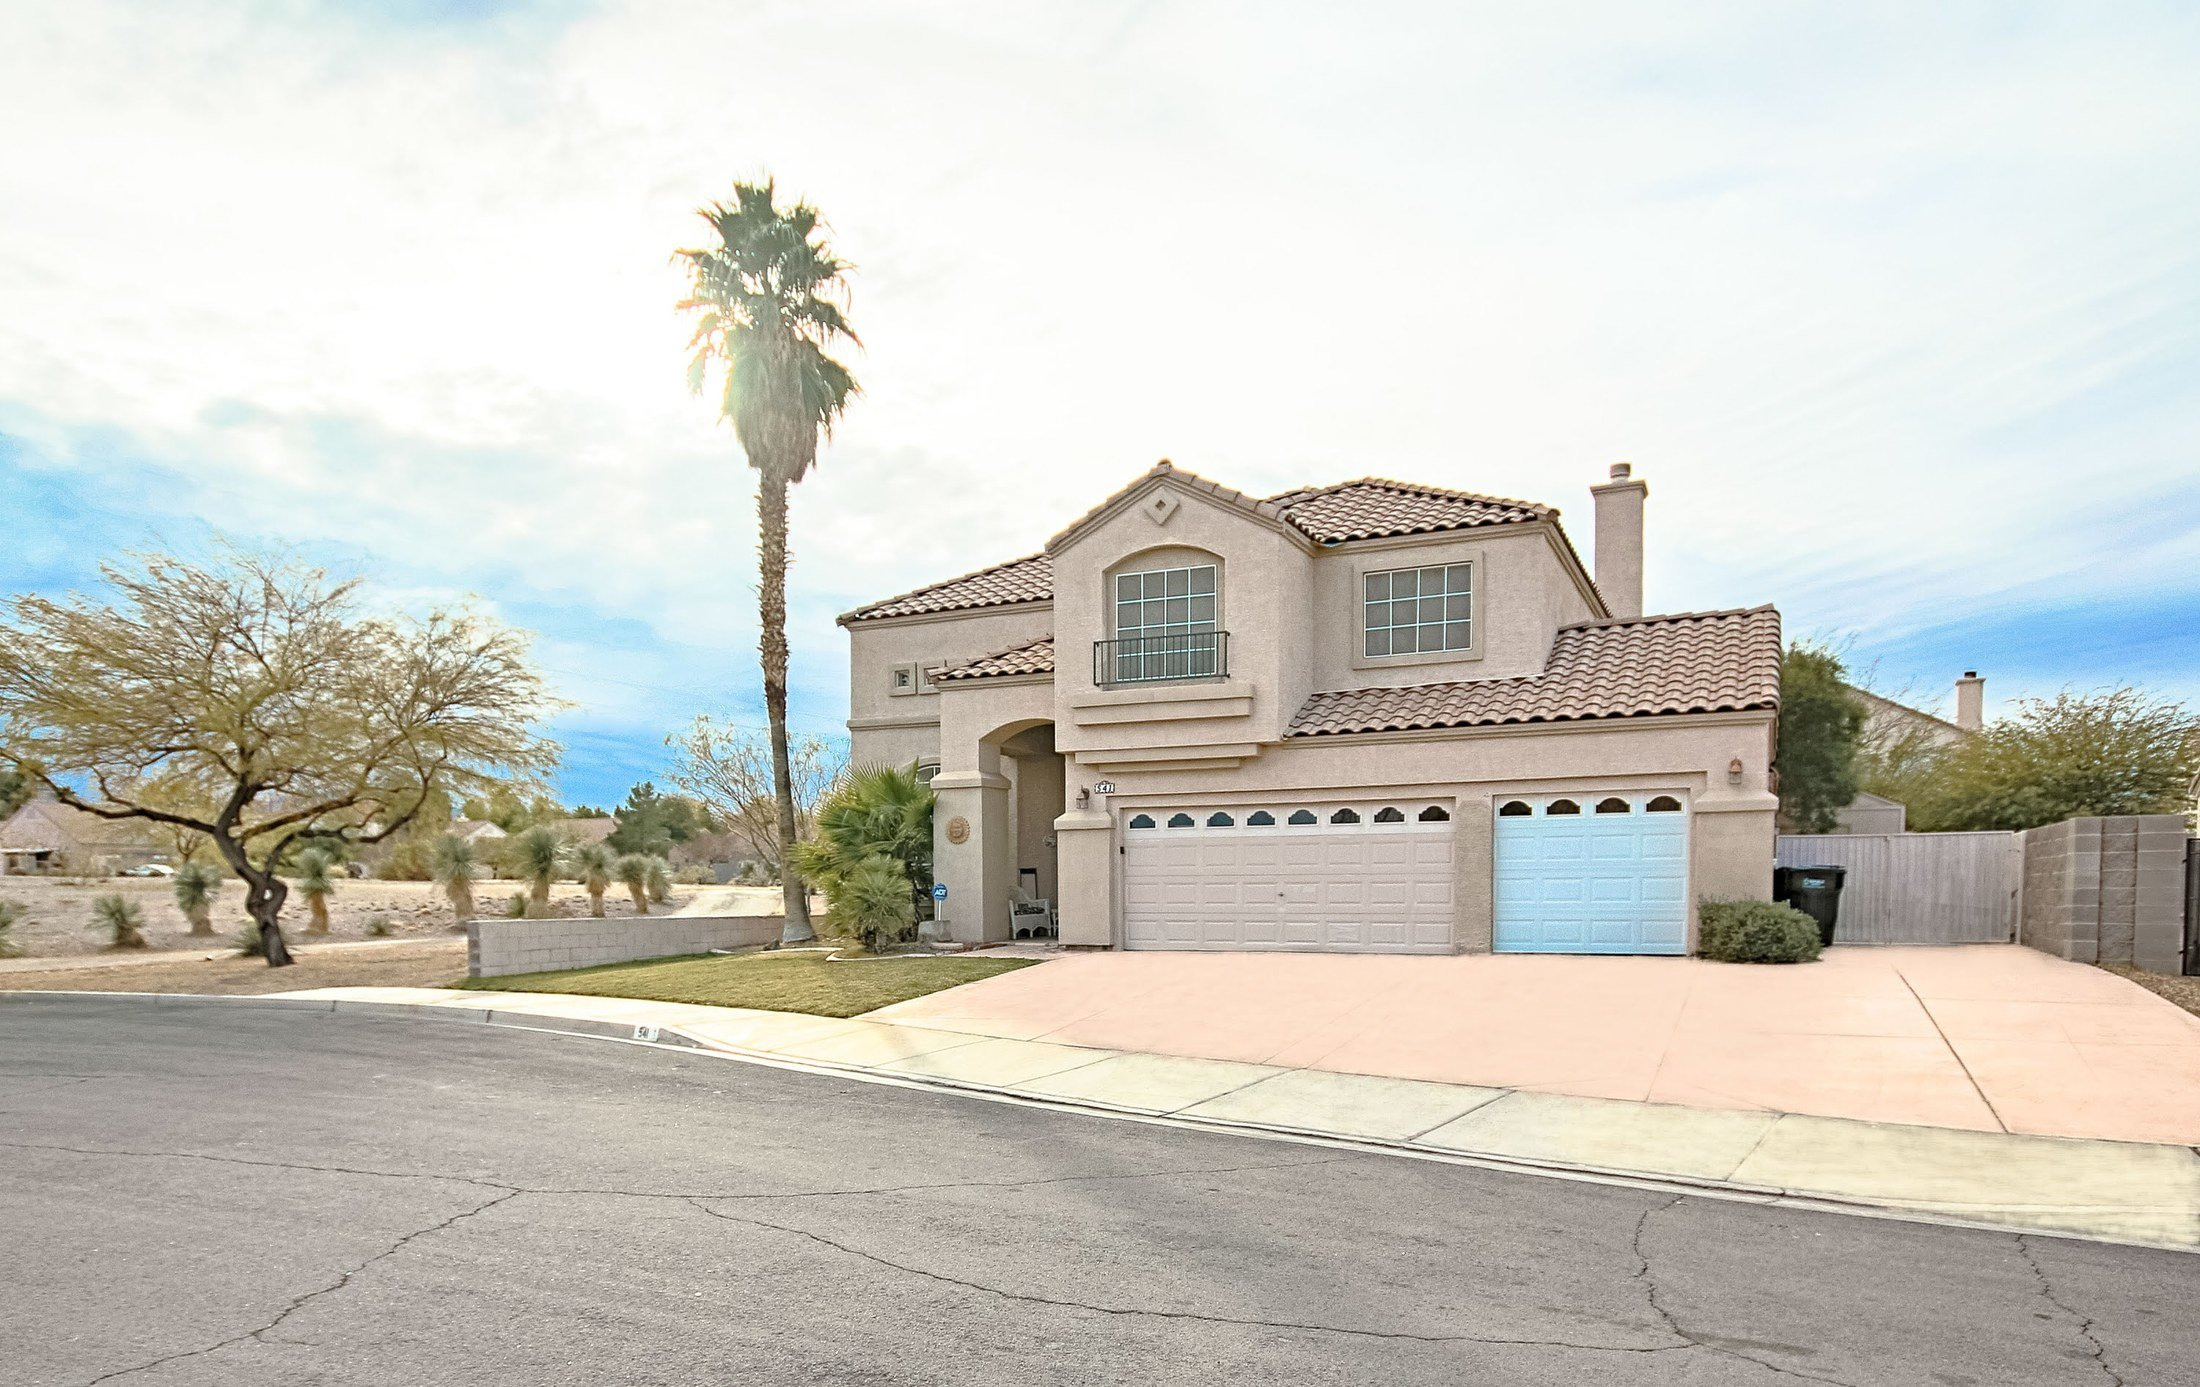 Summerlin Real Estate Mls Listings Homes Condos